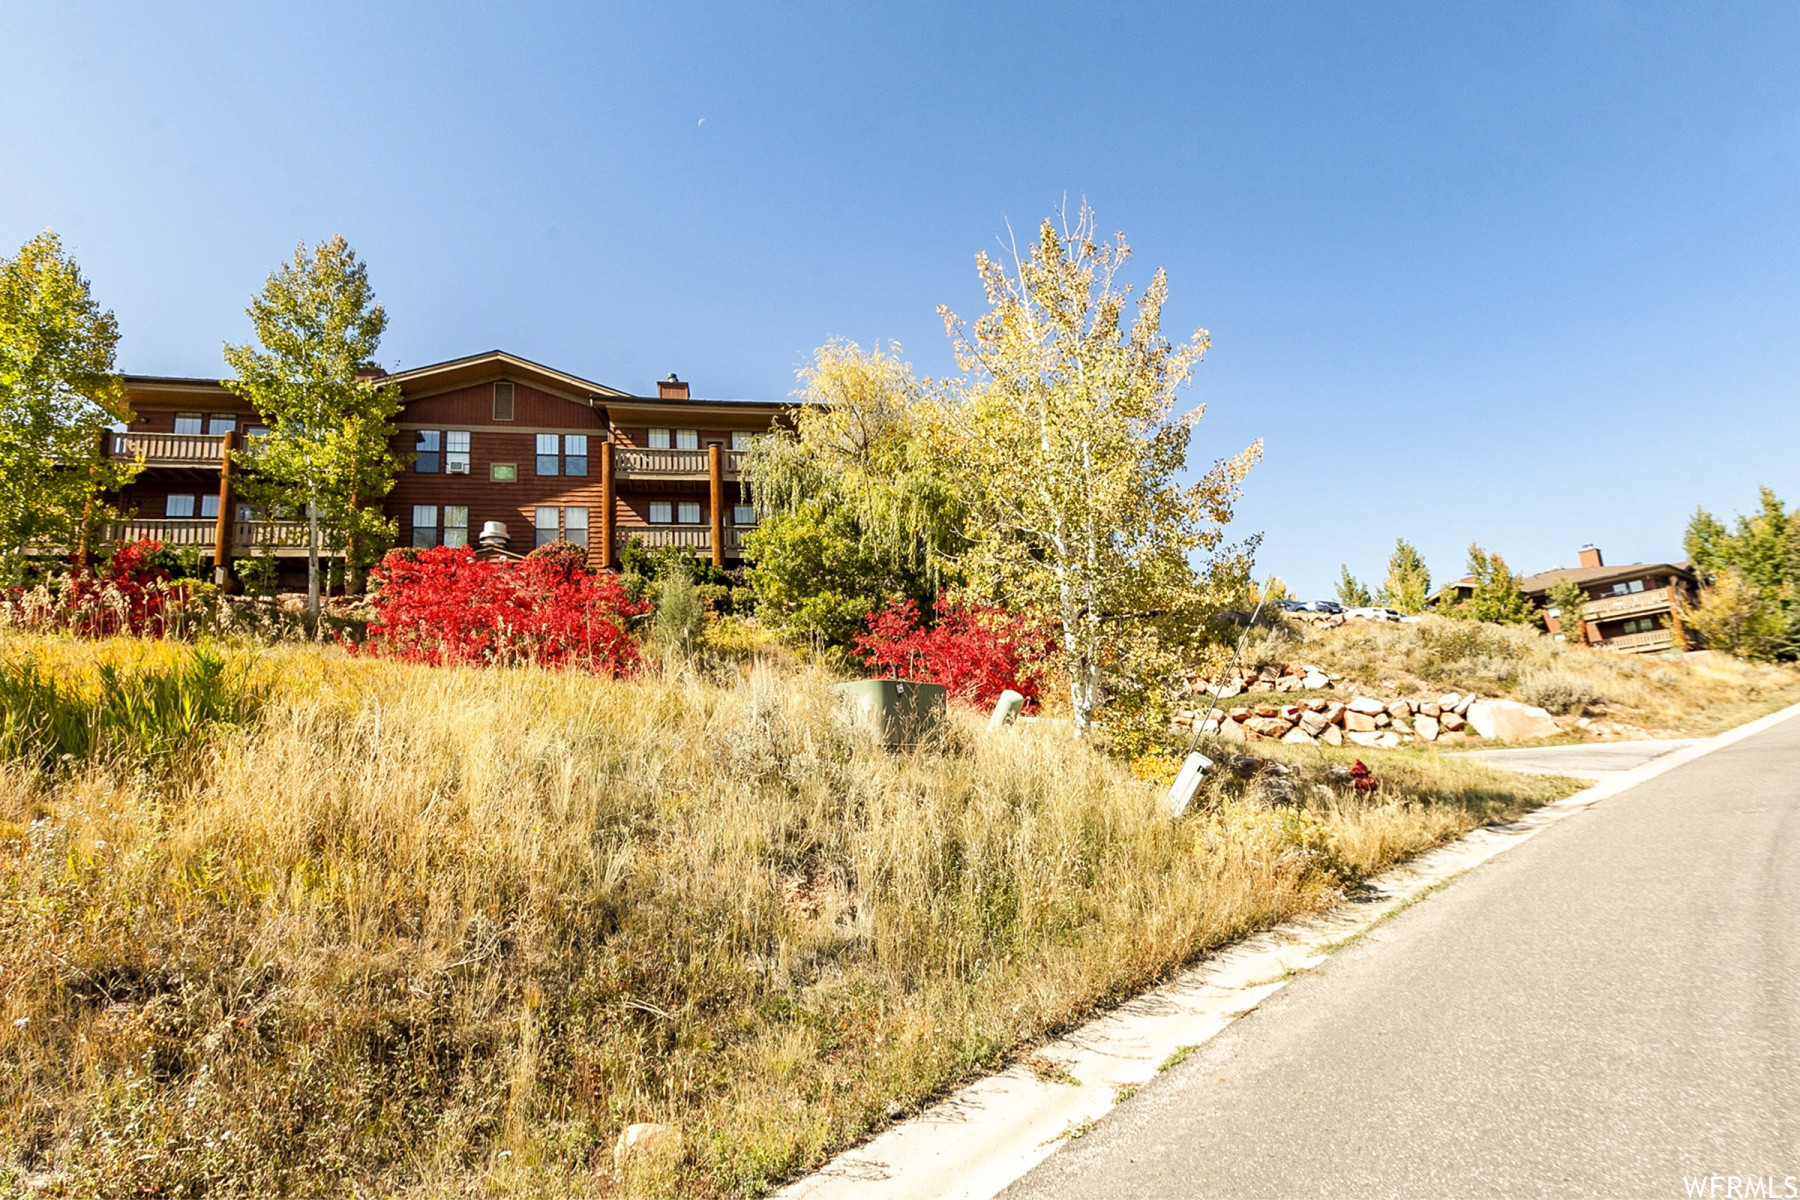 1-Story Condo In Pinebrook